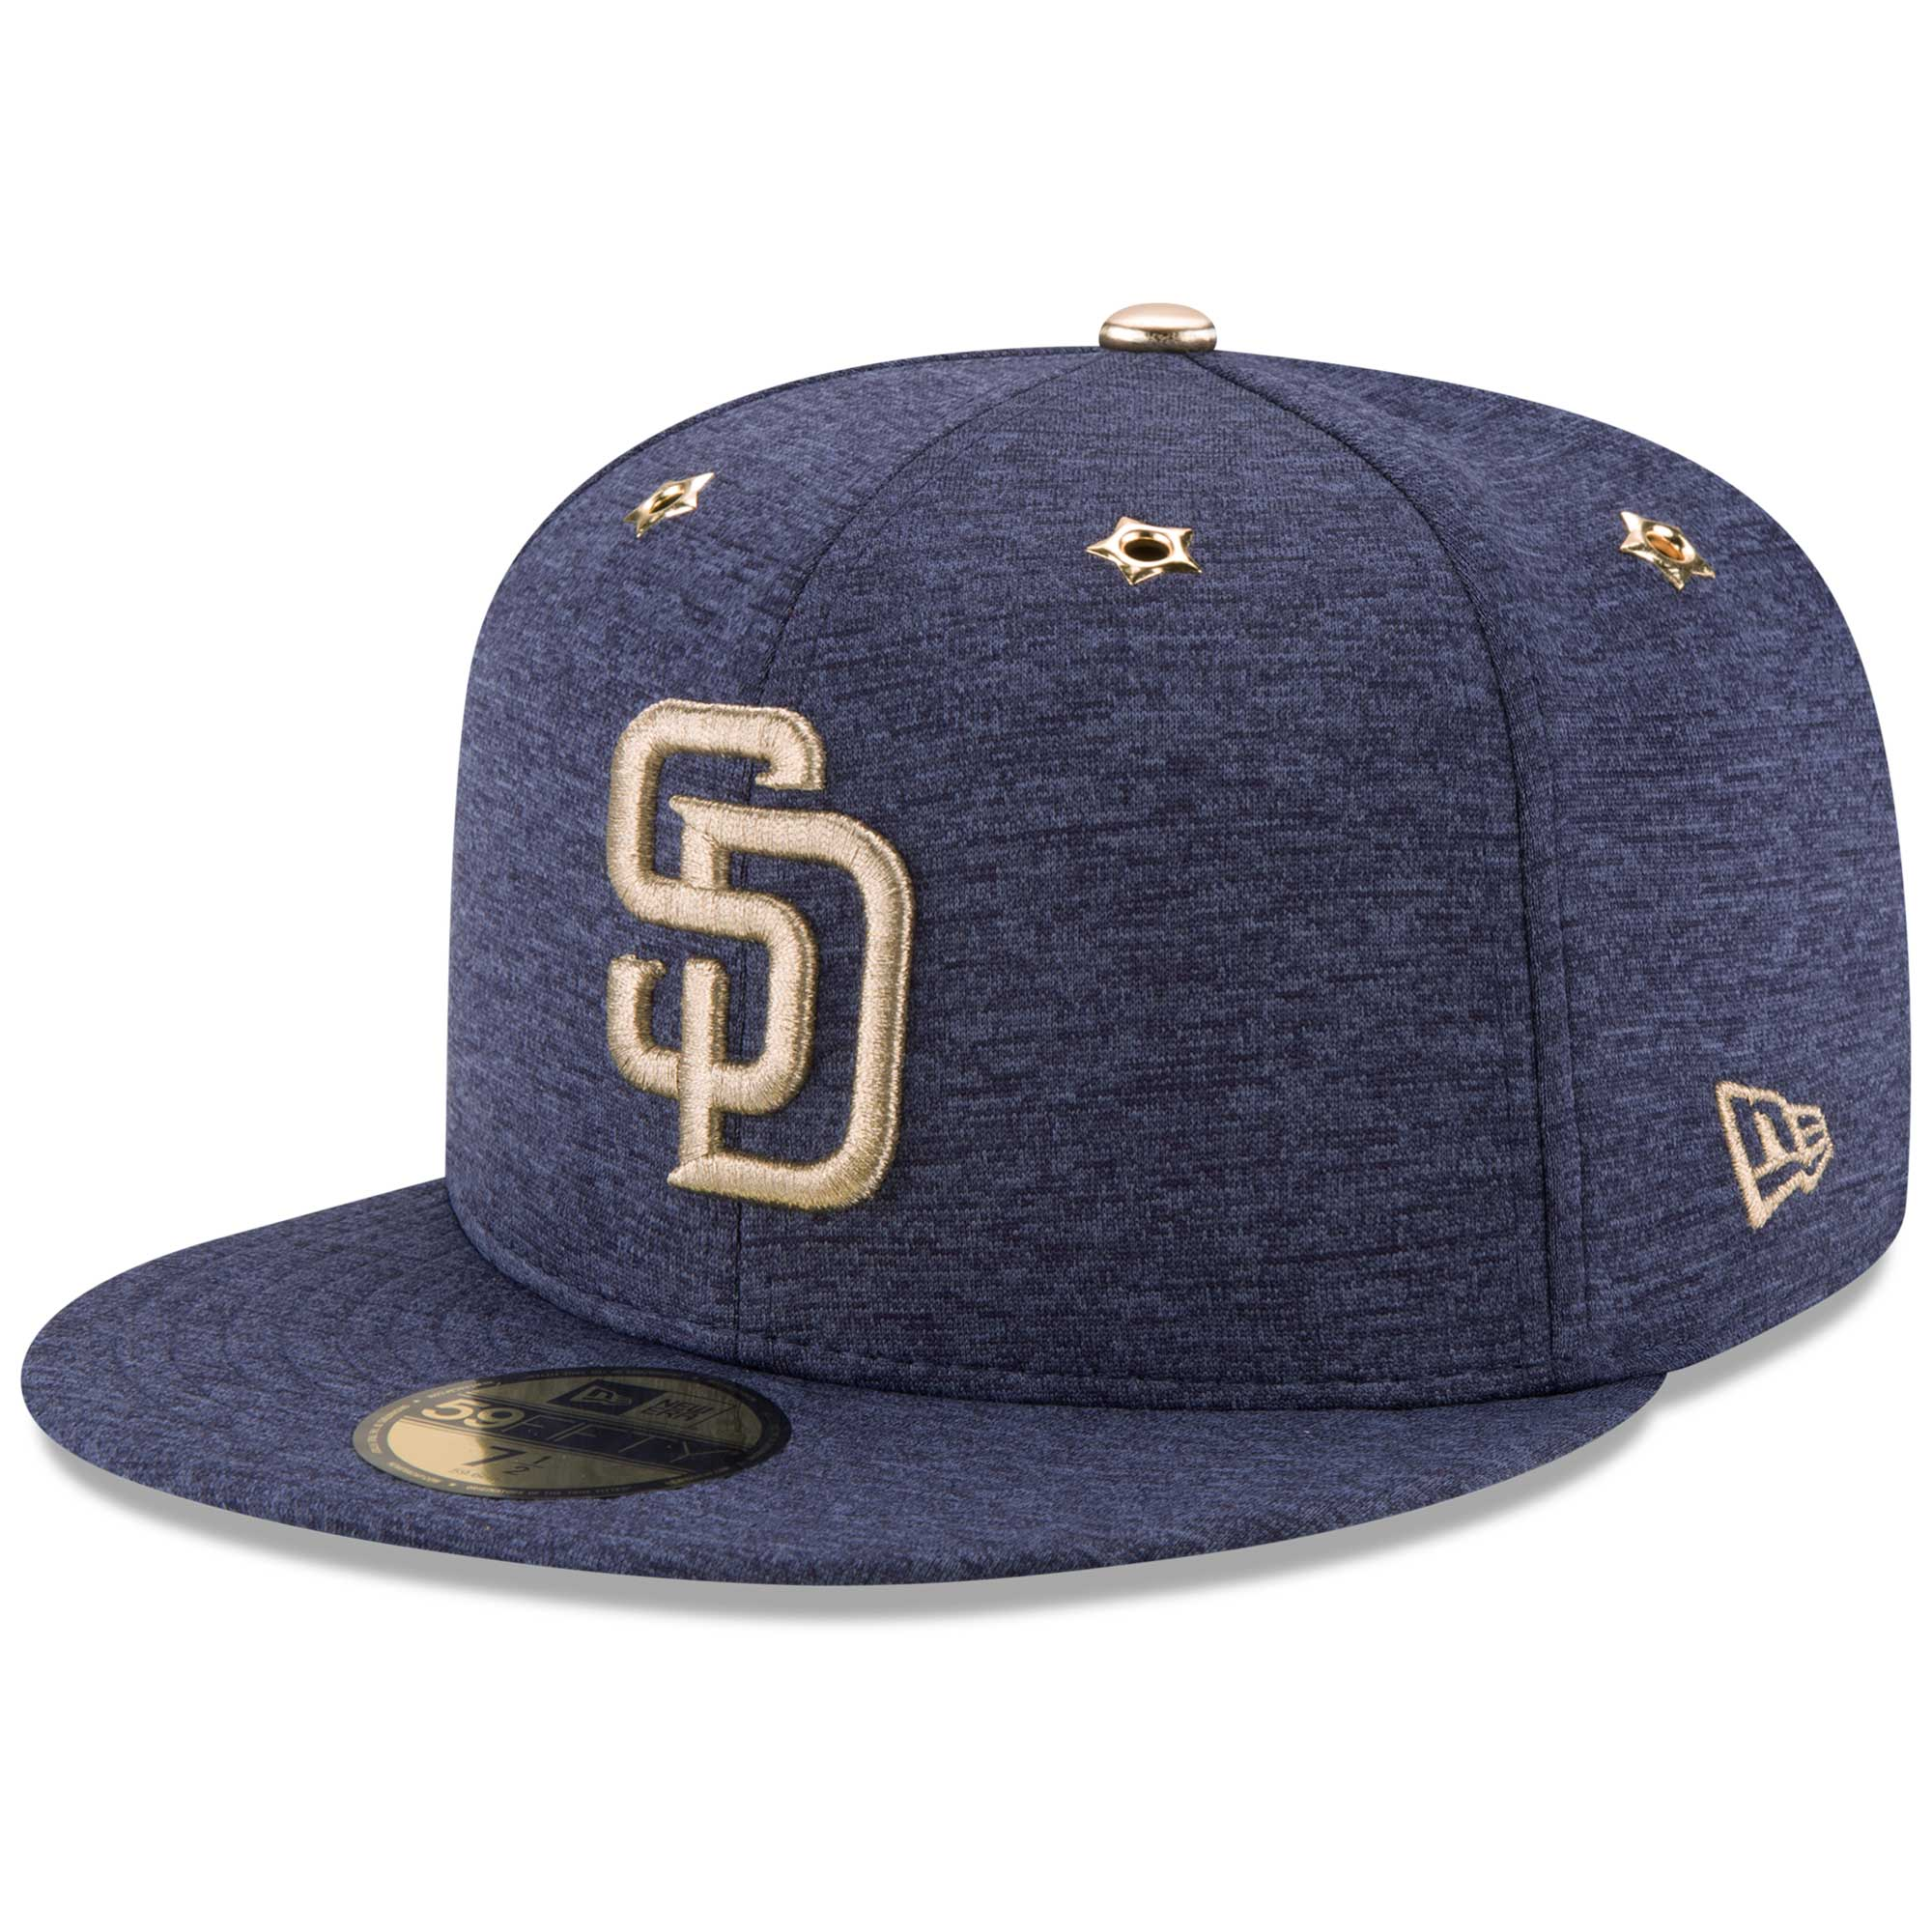 competitive price 79990 807f1 San Diego Padres New Era 2017 MLB All-Star Game Side Patch 59FIFTY Fitted  Hat - Heathered Navy - Walmart.com